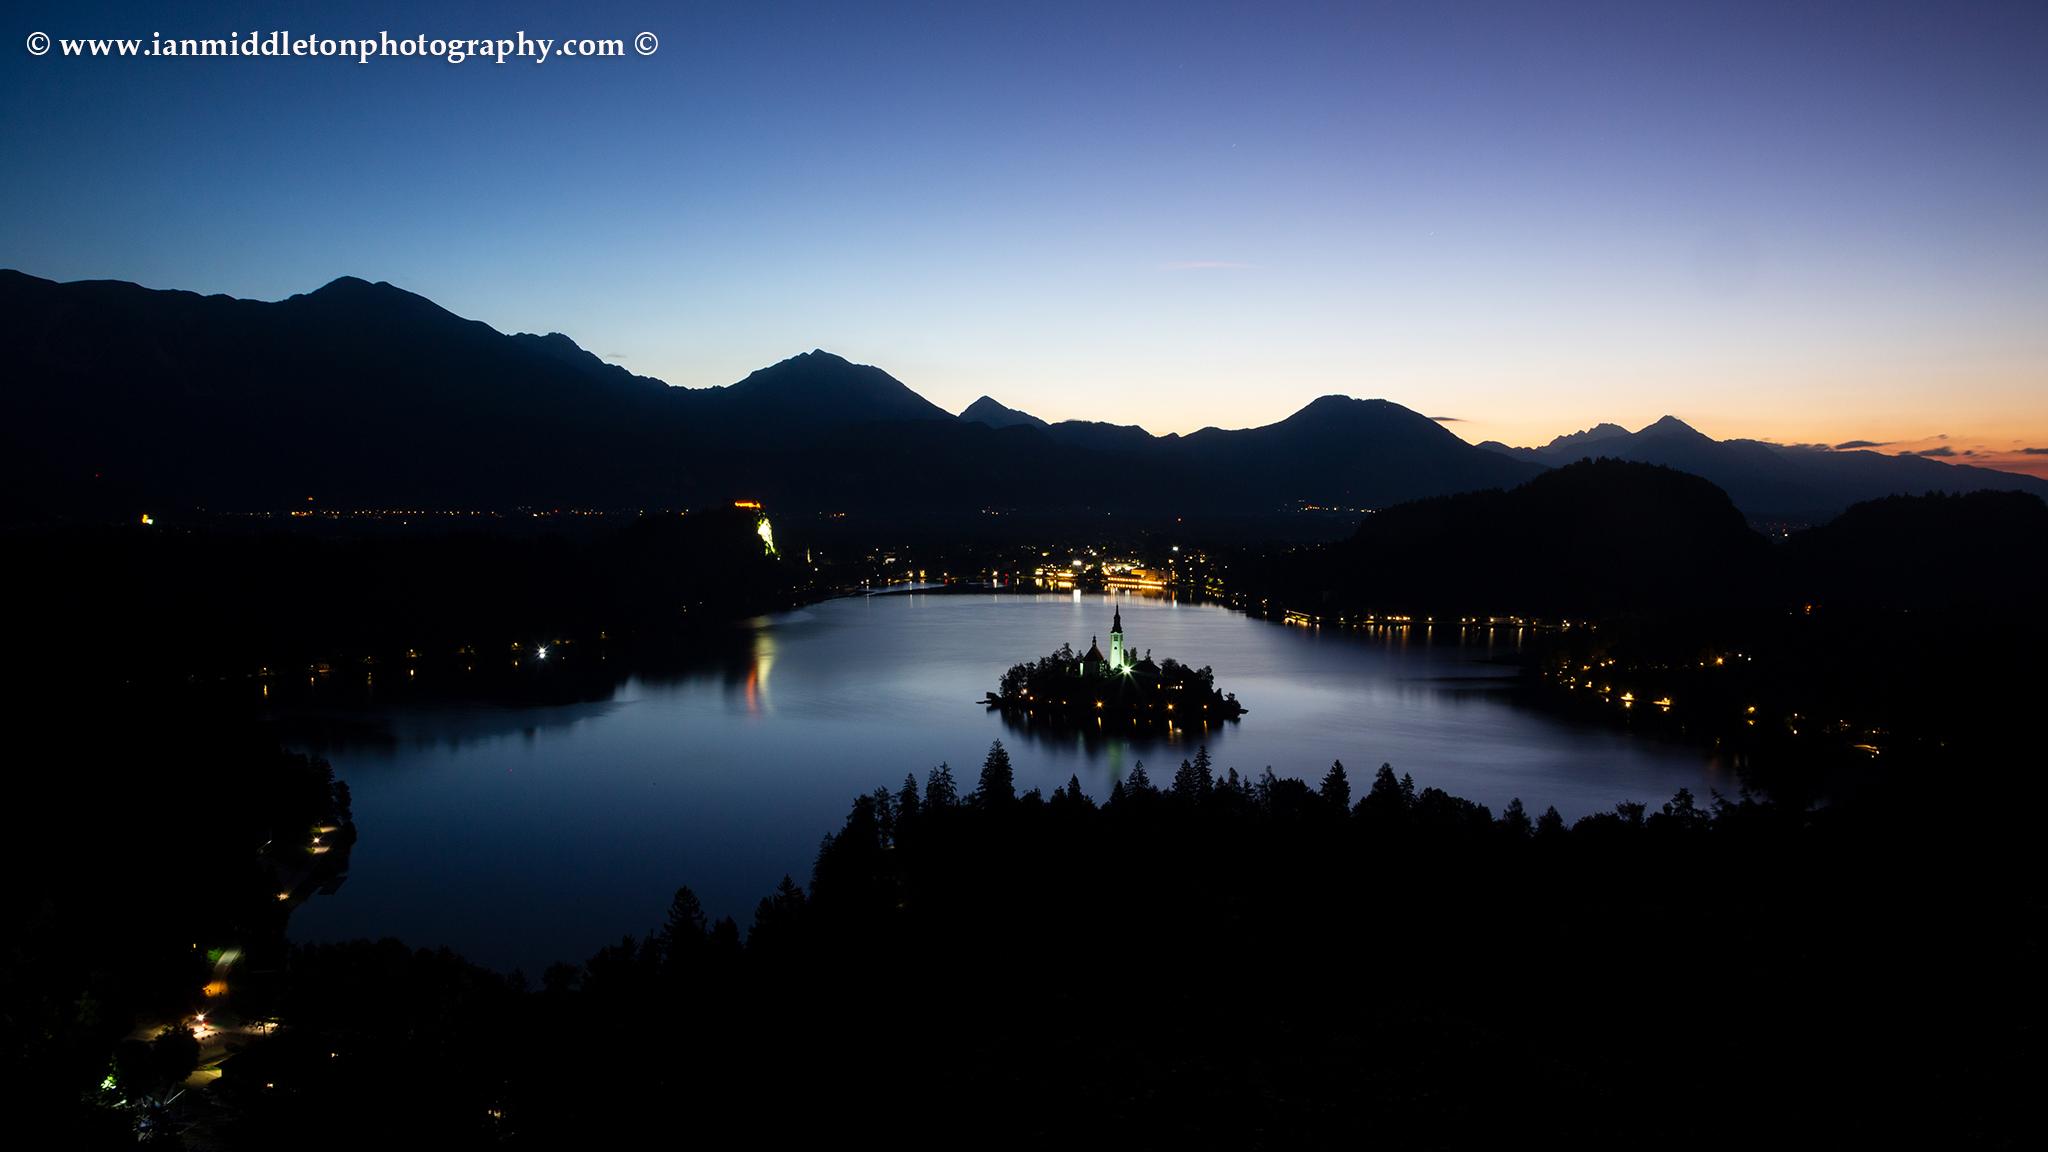 View across Lake Bled to the island church and clifftop castle from Ojstrica at dawn, Slovenia.